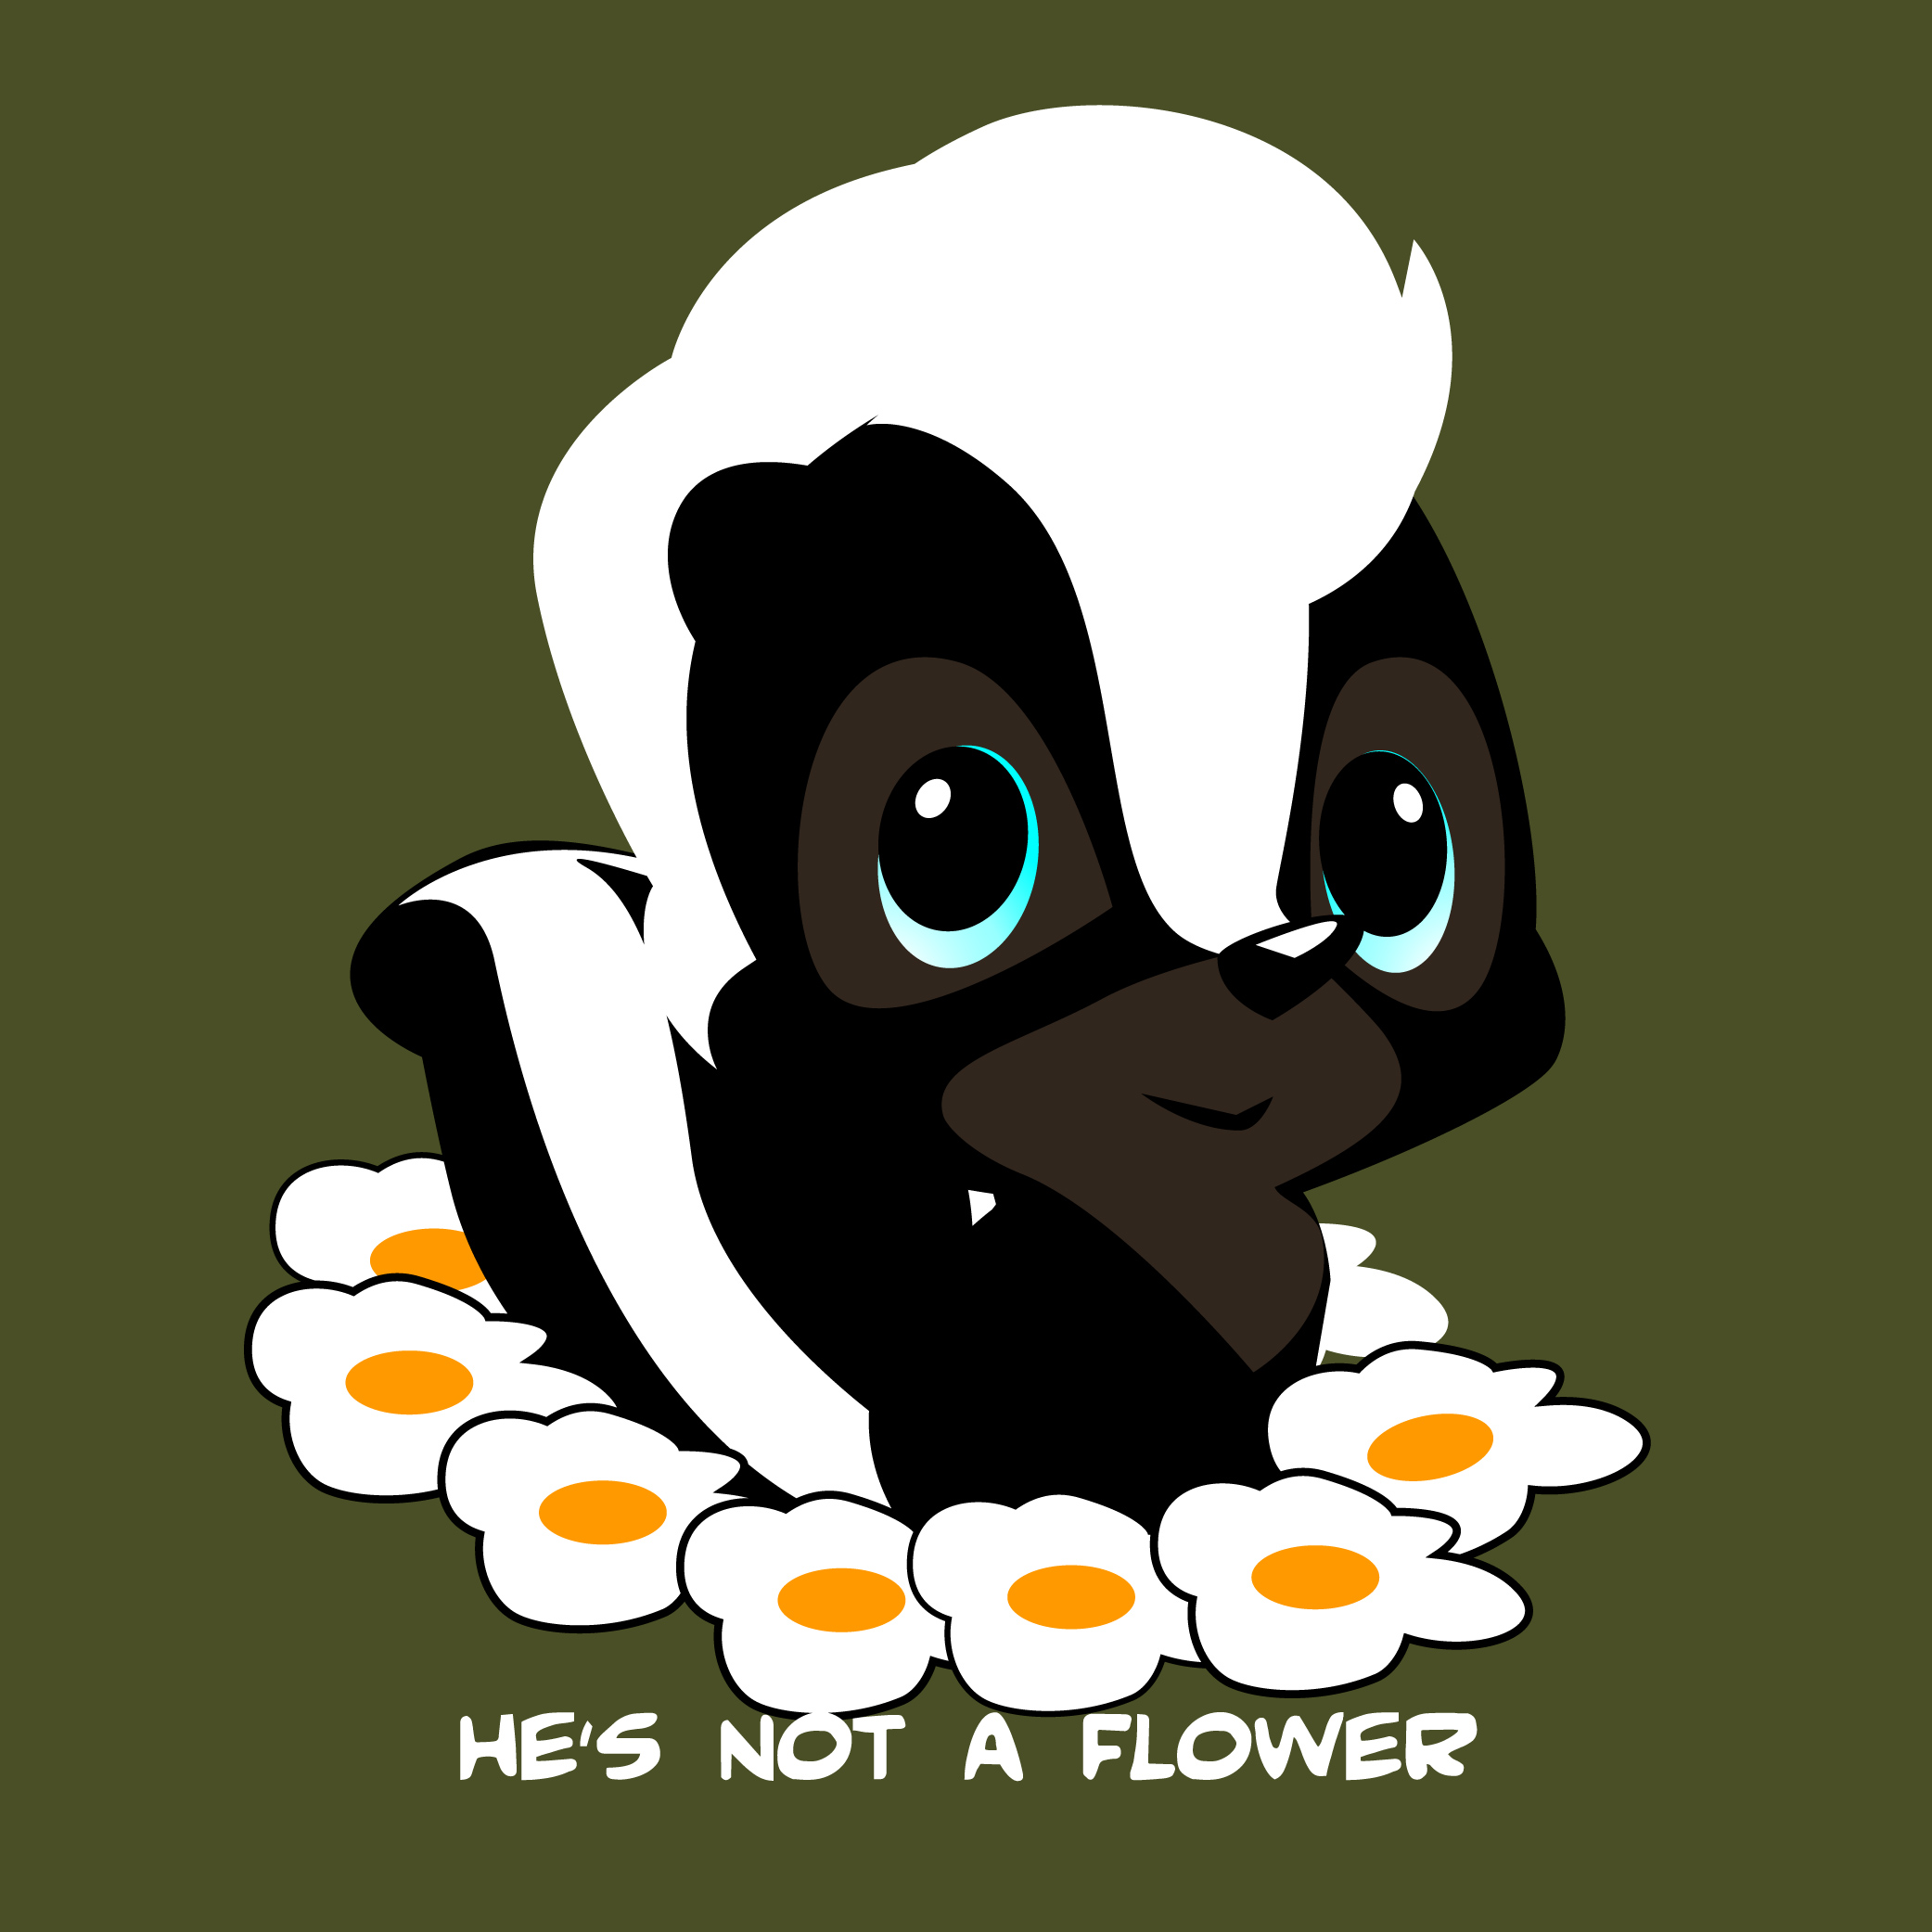 You can call him flower